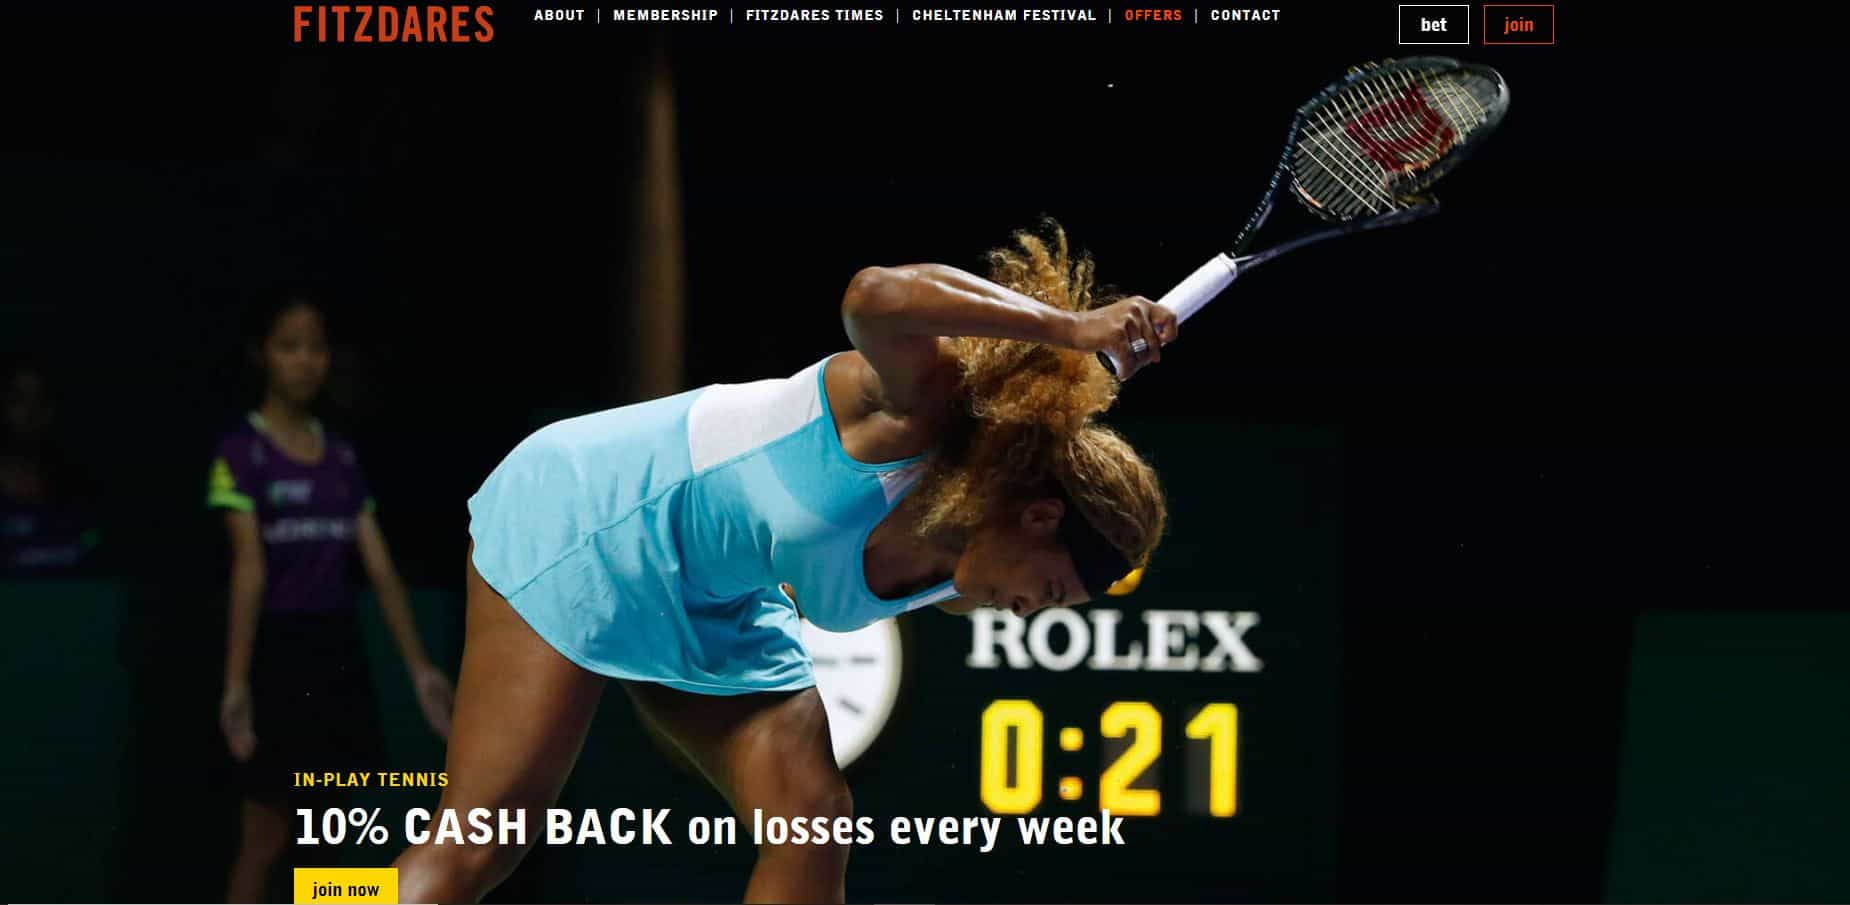 Online sports betting reviews us open federer vs berdych betting